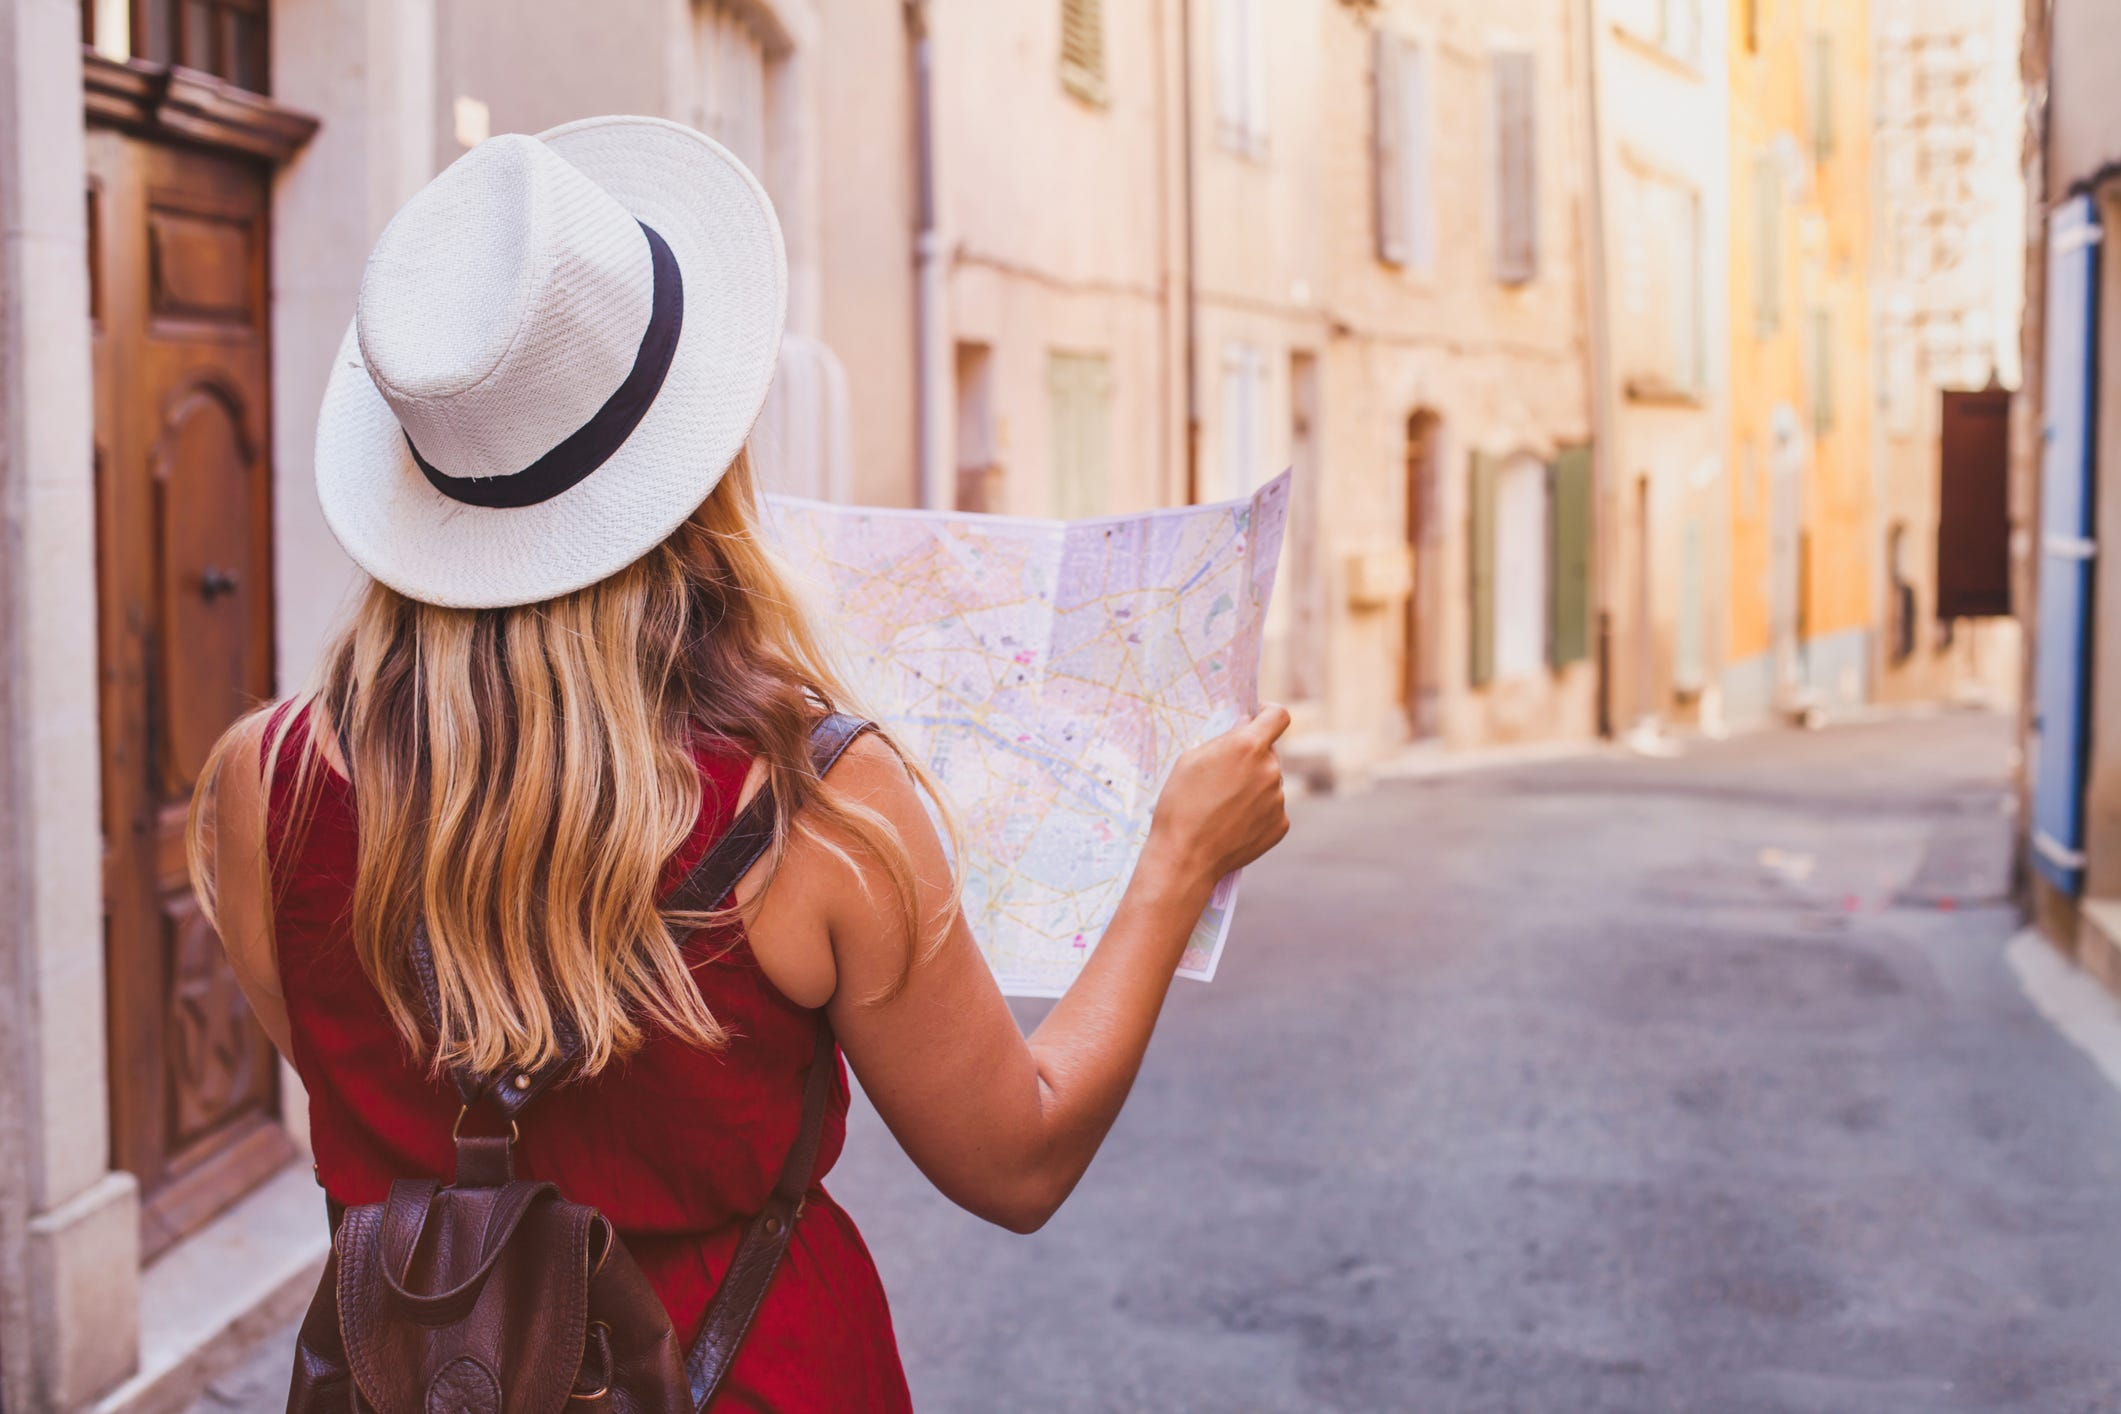 Day tripping: 10 suggestions for game-planning and packing for a day of sightseeing